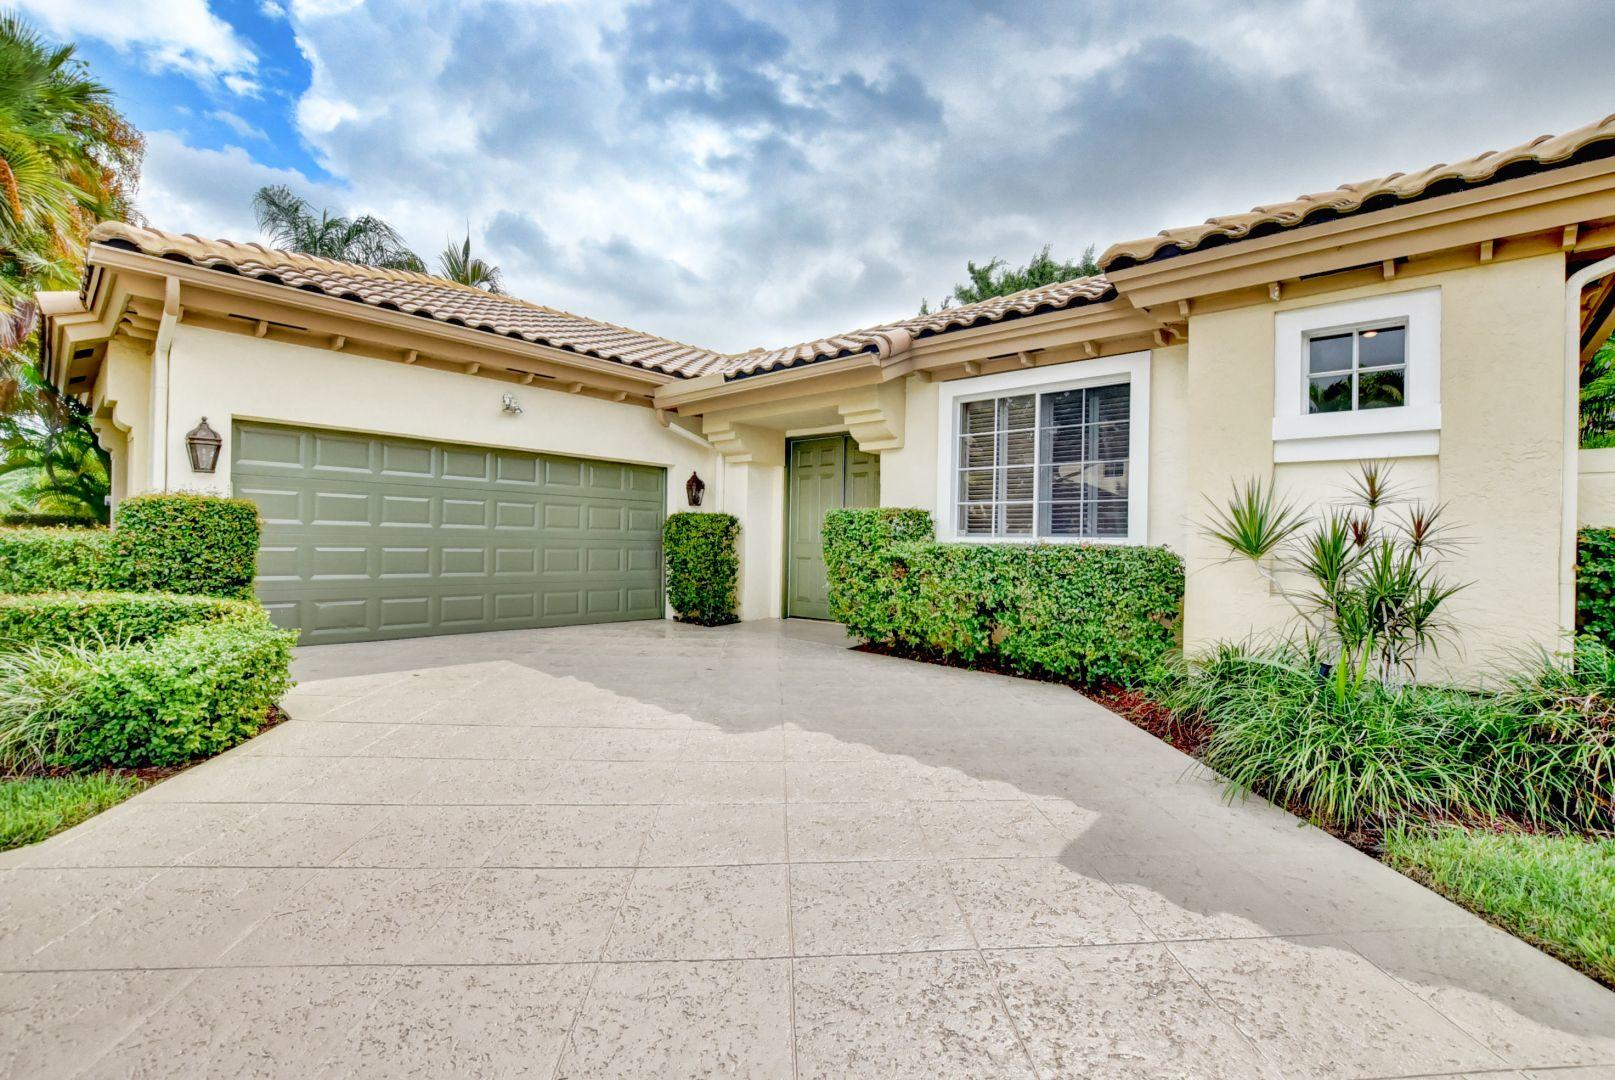 Home for sale in Santa Barbara Boca Raton Florida